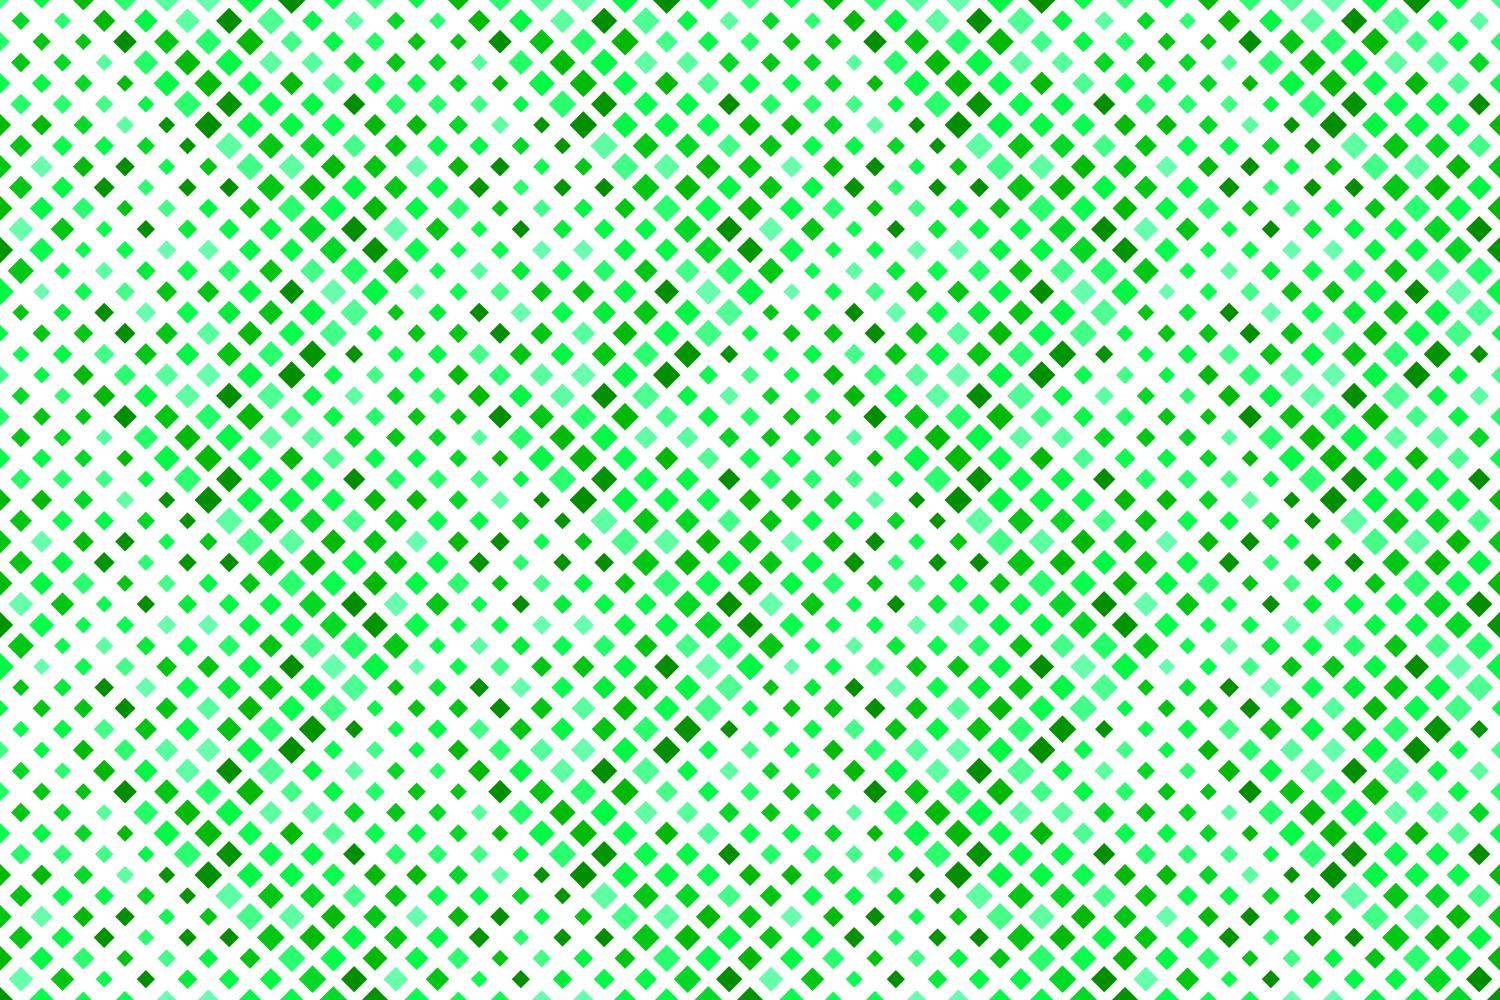 24 Seamless Green Square Patterns example image 8